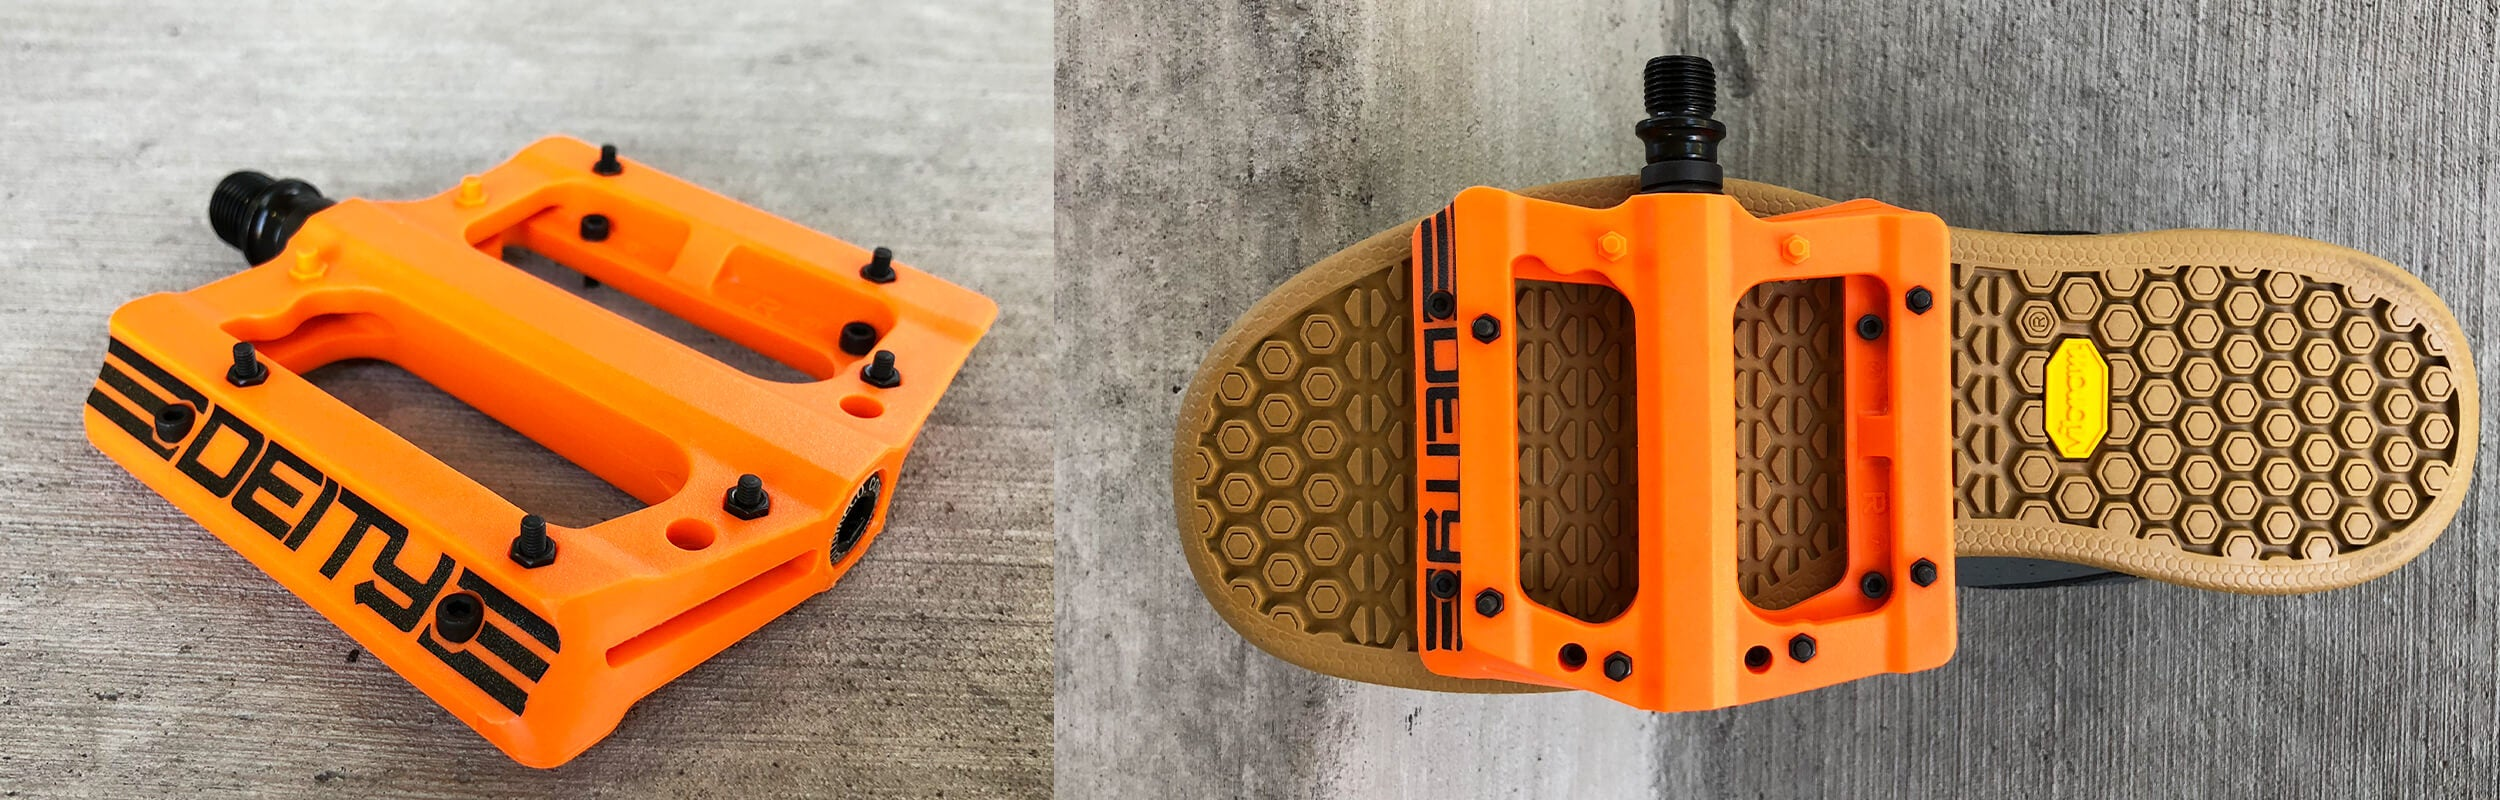 Deity Flat Pedals - Contender Bicycles